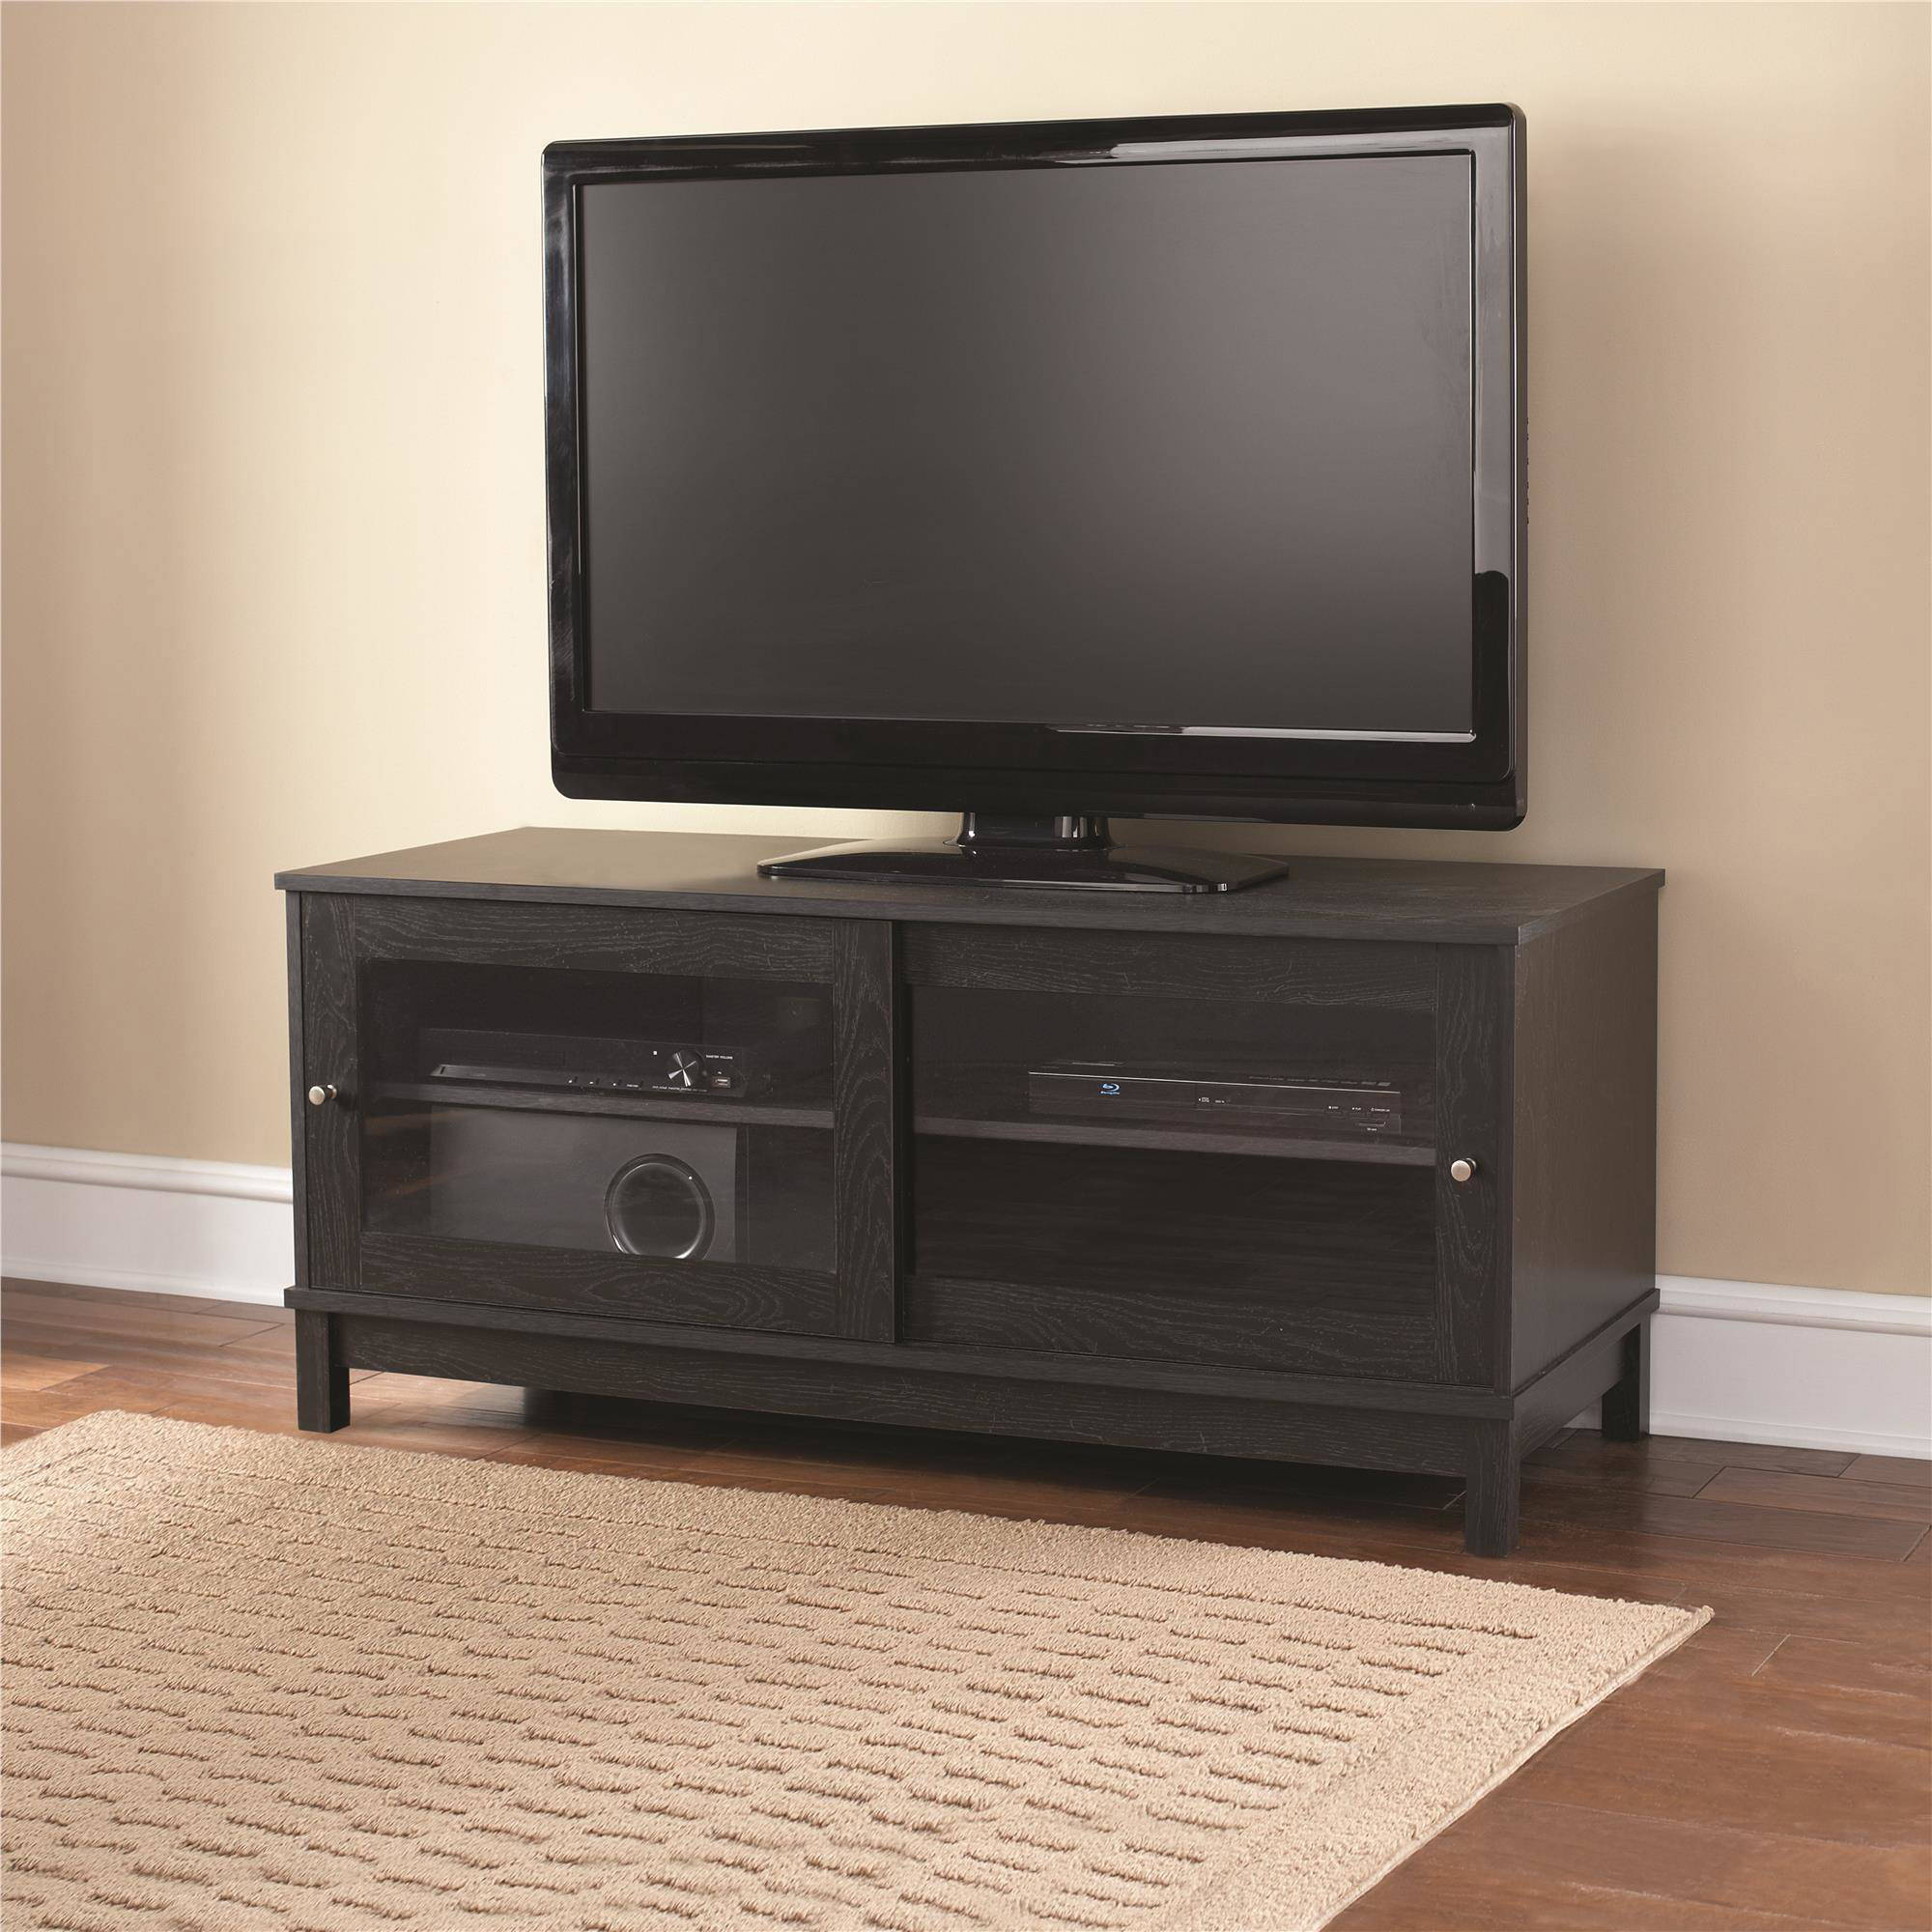 Mainstays 55 Tv Stand With Sliding Gl Doors Multiple Colors